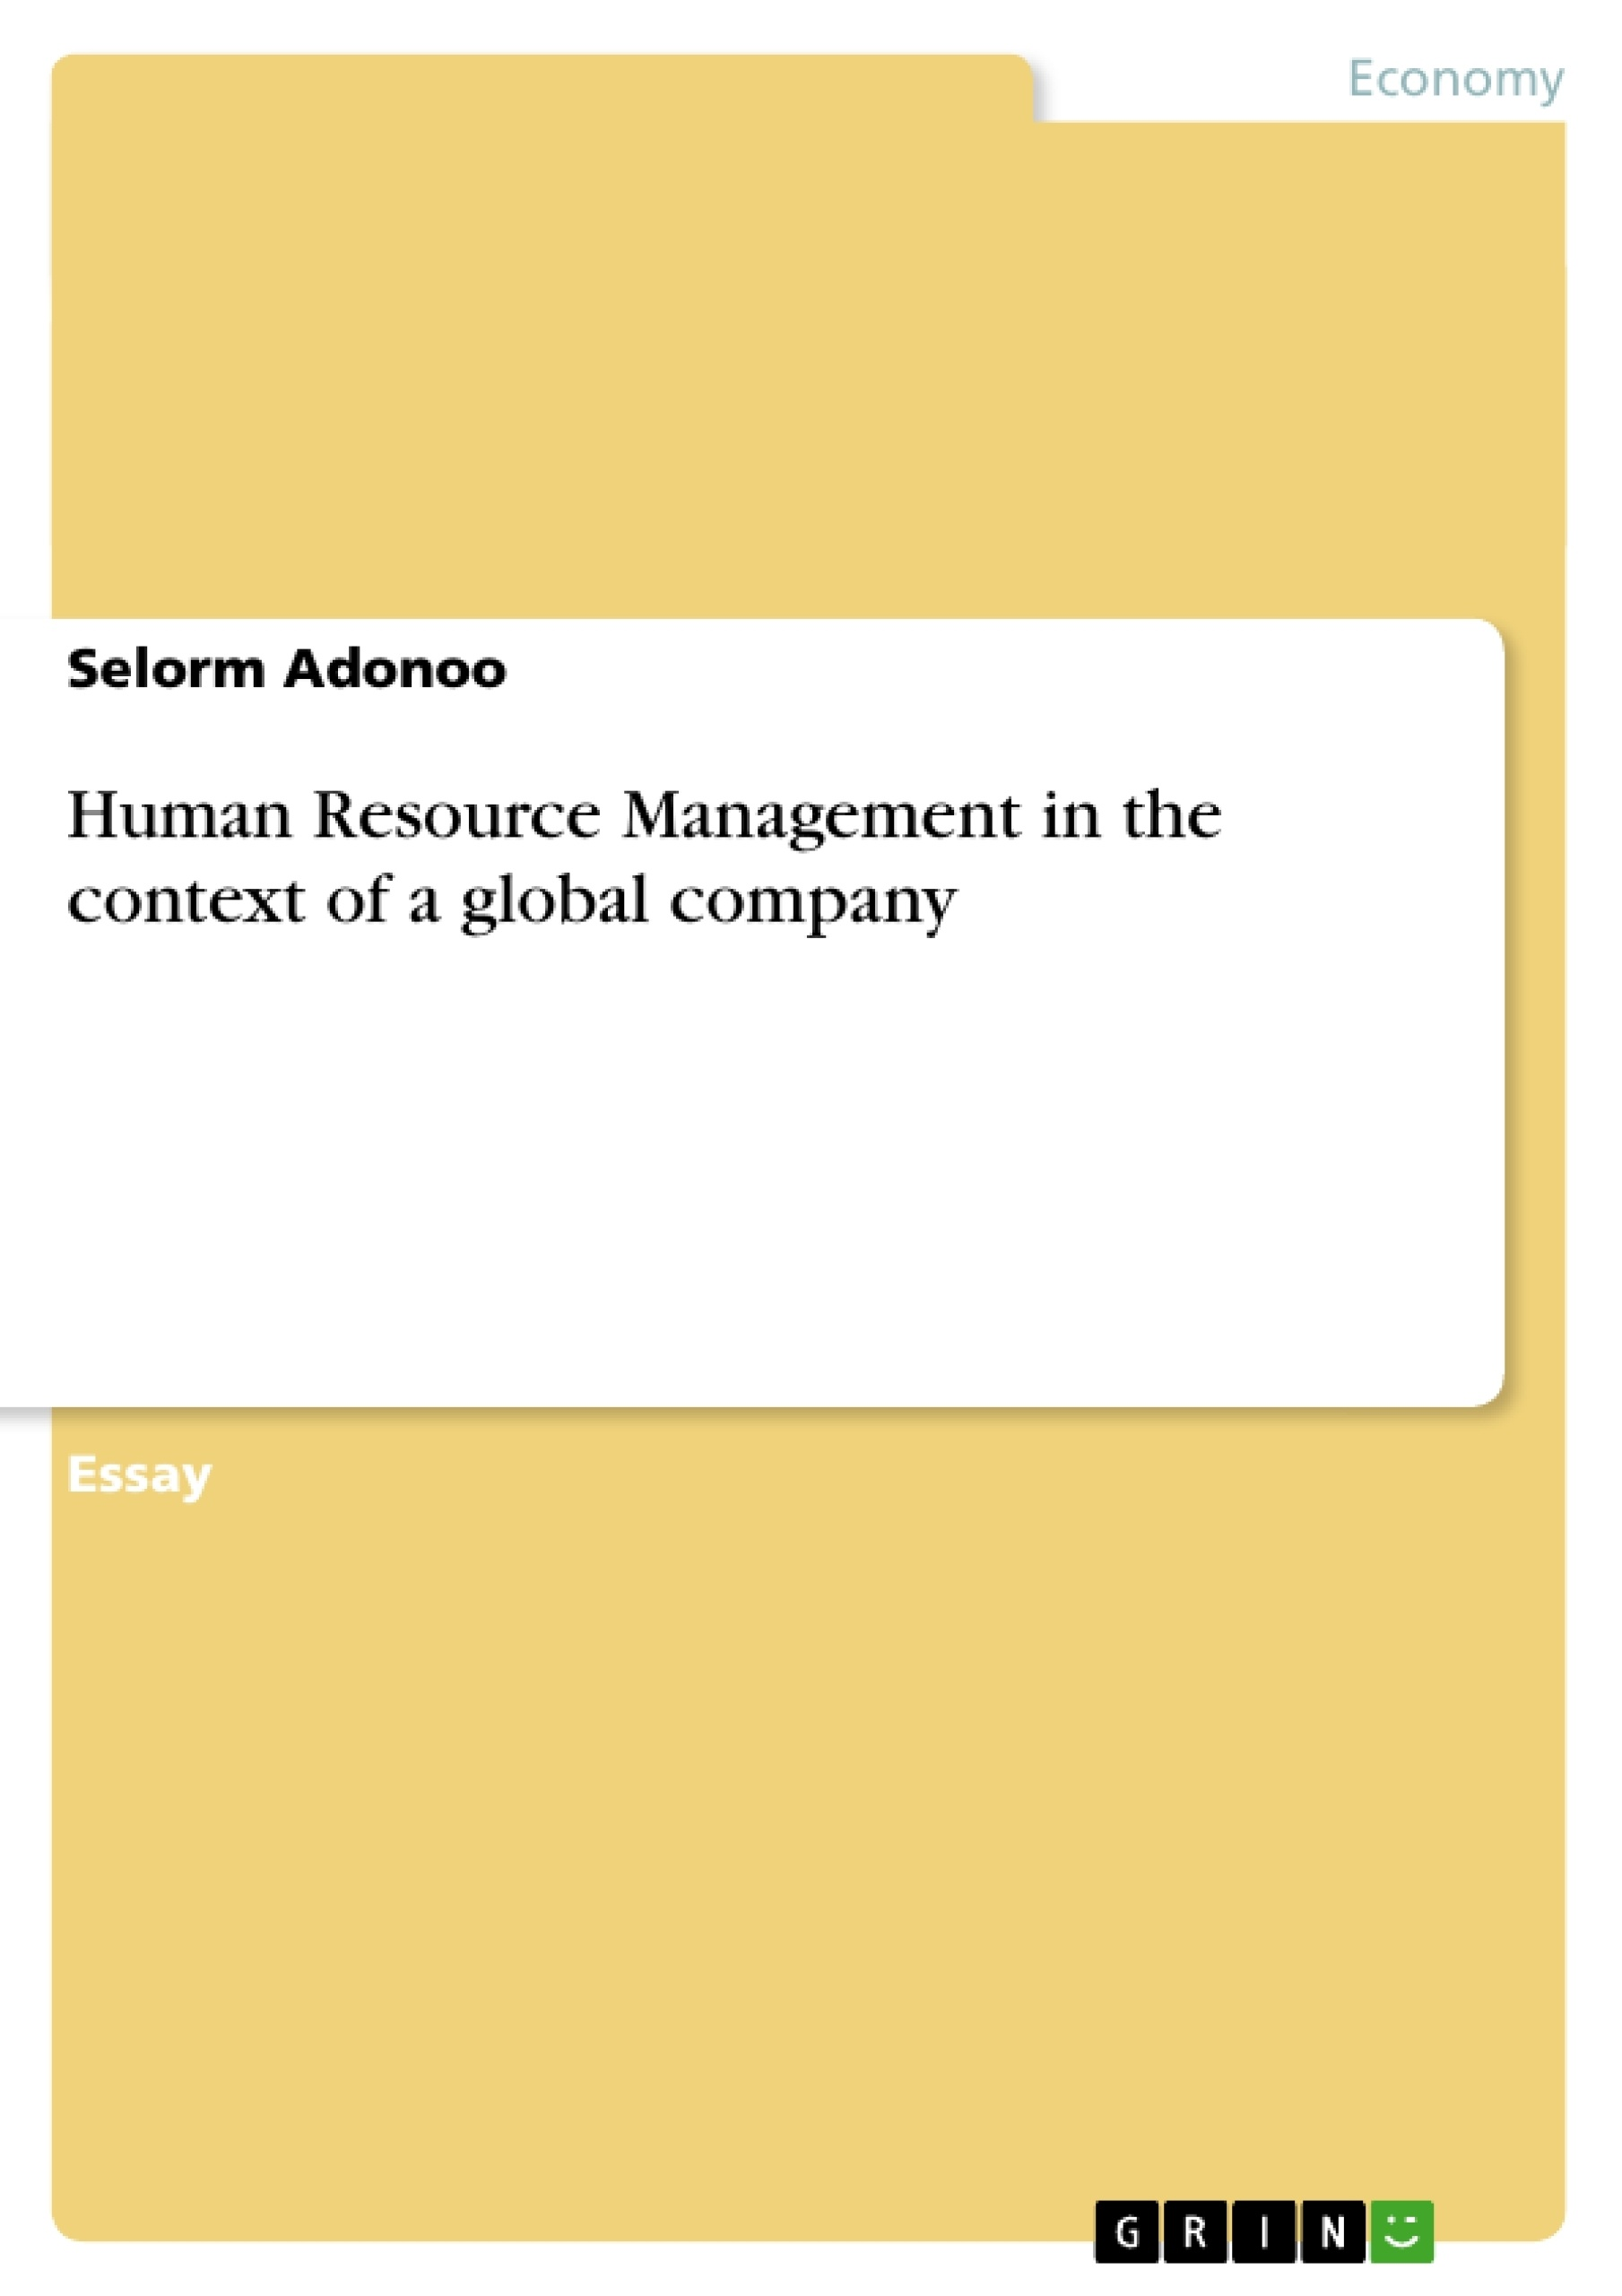 Title: Human Resource Management in the context of a global company